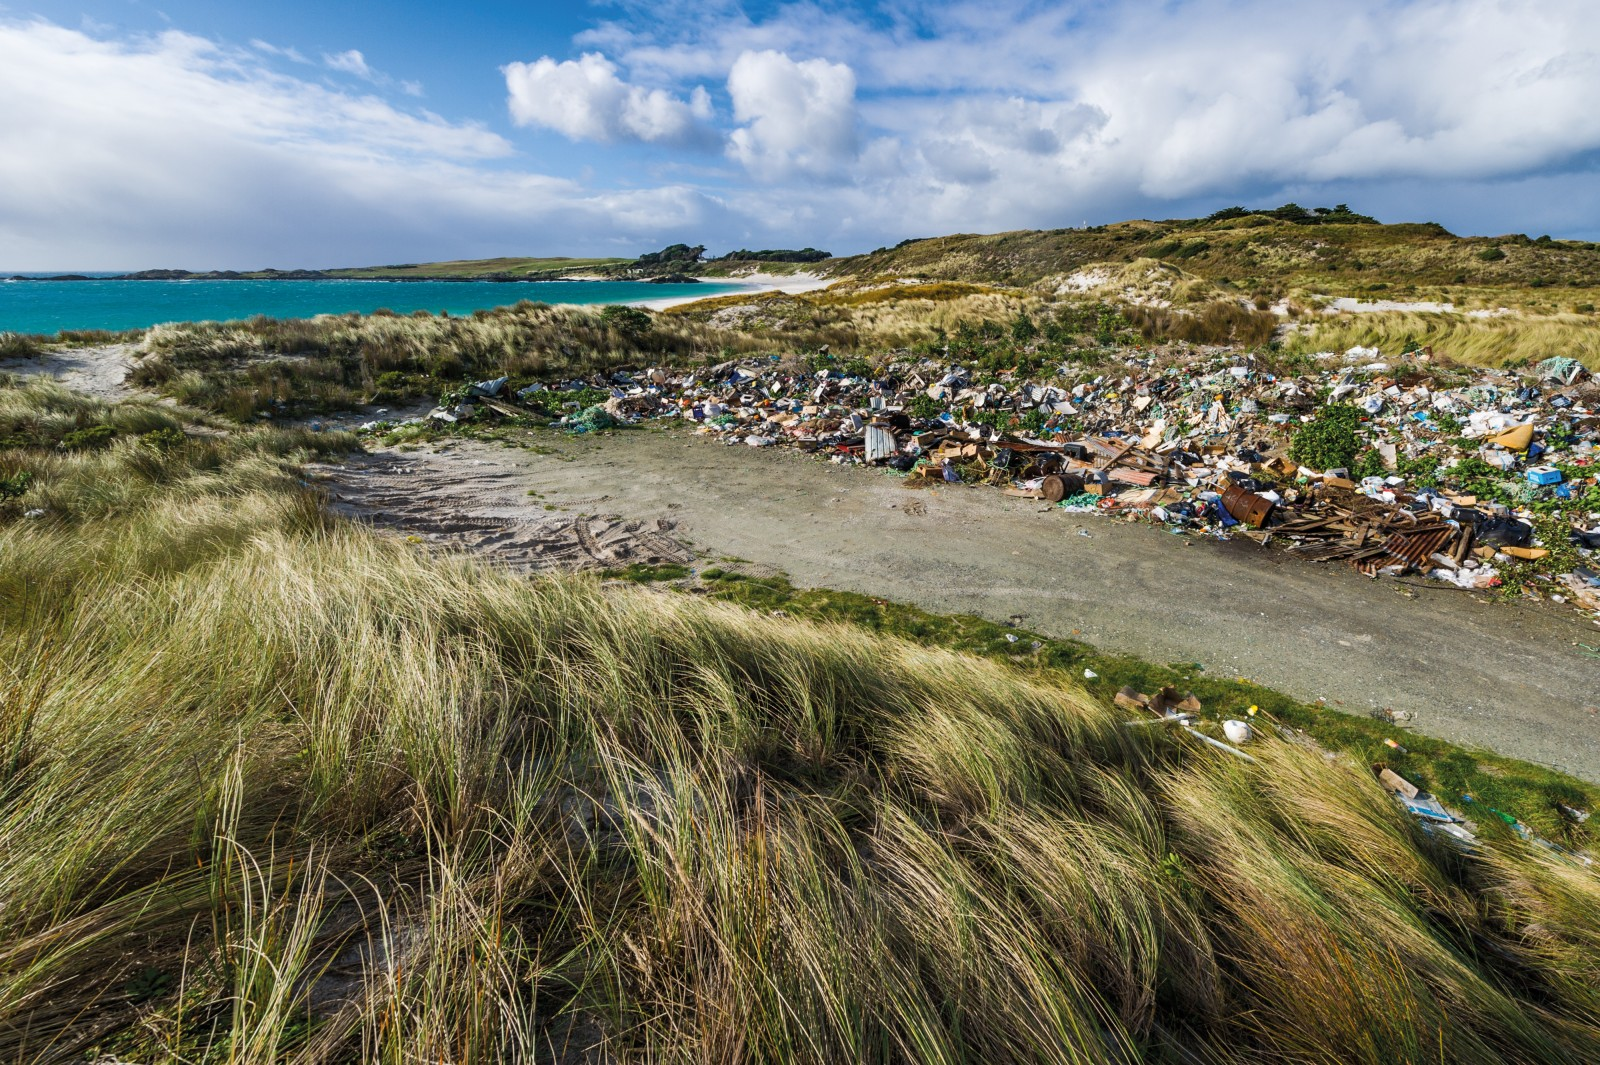 For now, waste management on Chatham Island, the largest in the Chatham Islands group, means leaving it in a heap behind the dunes of Kaingaroa, at the skittish whim of the southerly. The islands' council is gradually implementing a waste management strategy that will see landfill and septic disposal facilities brought up to current health and environmental standards.